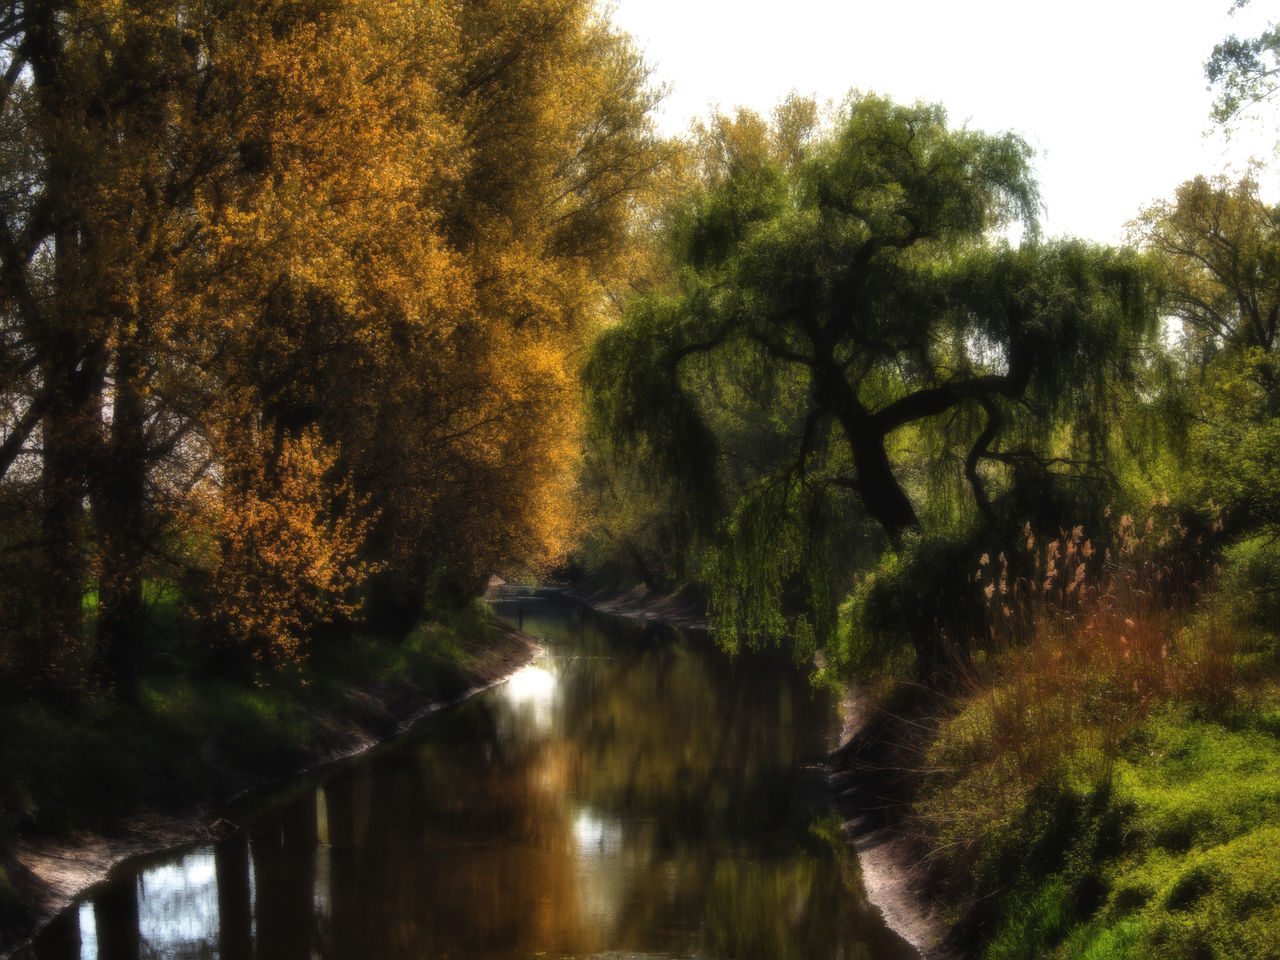 tree, nature, water, river, growth, no people, tranquility, outdoors, beauty in nature, scenics, day, sky